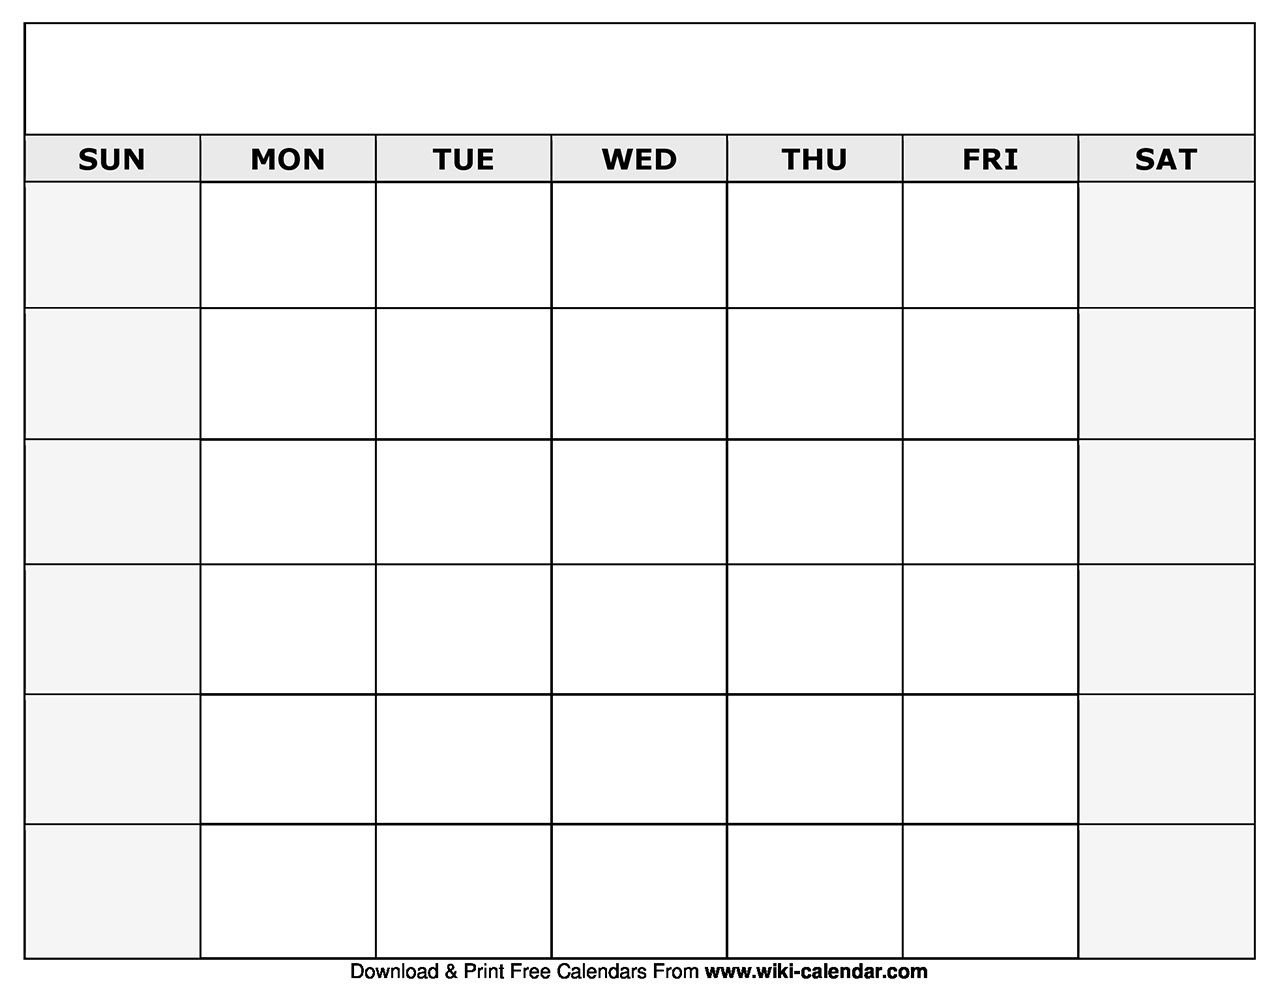 008 Stunning Fill In Calendar Template Example ~ Addictionary Free Calendars To Fill Out And Print